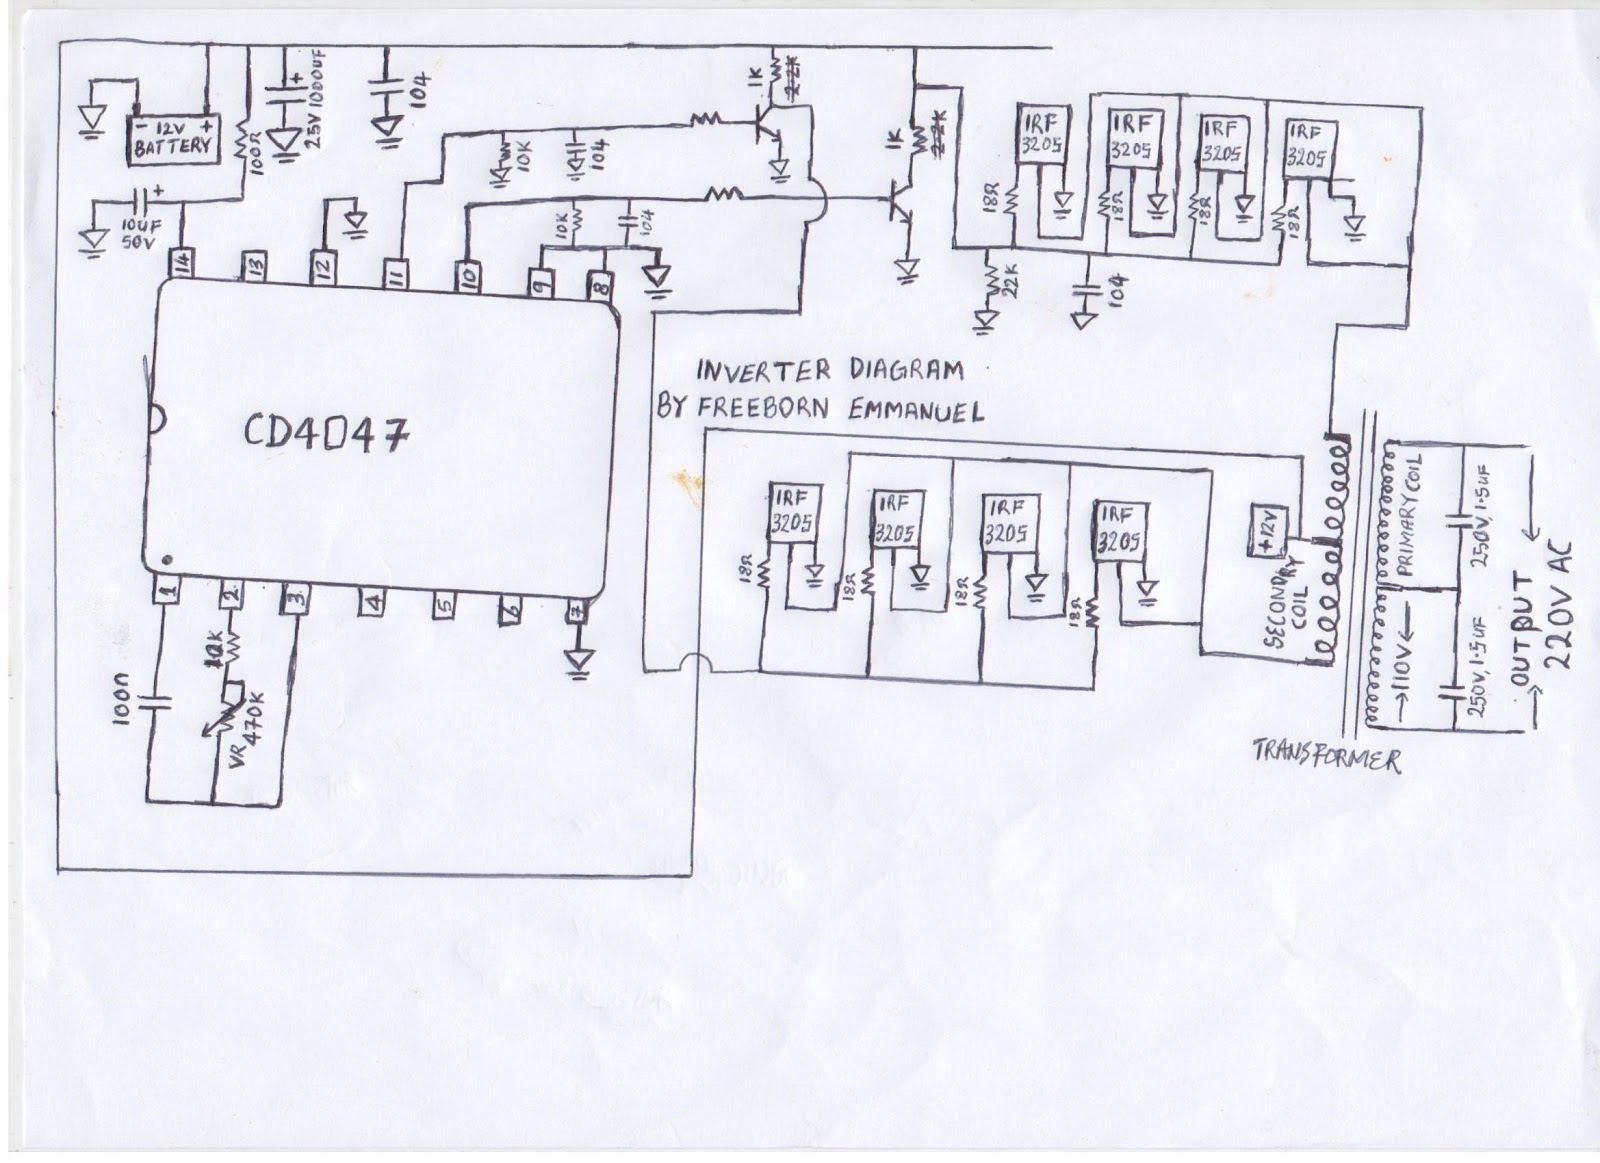 Inverter Wiring Diagram from 3.bp.blogspot.com